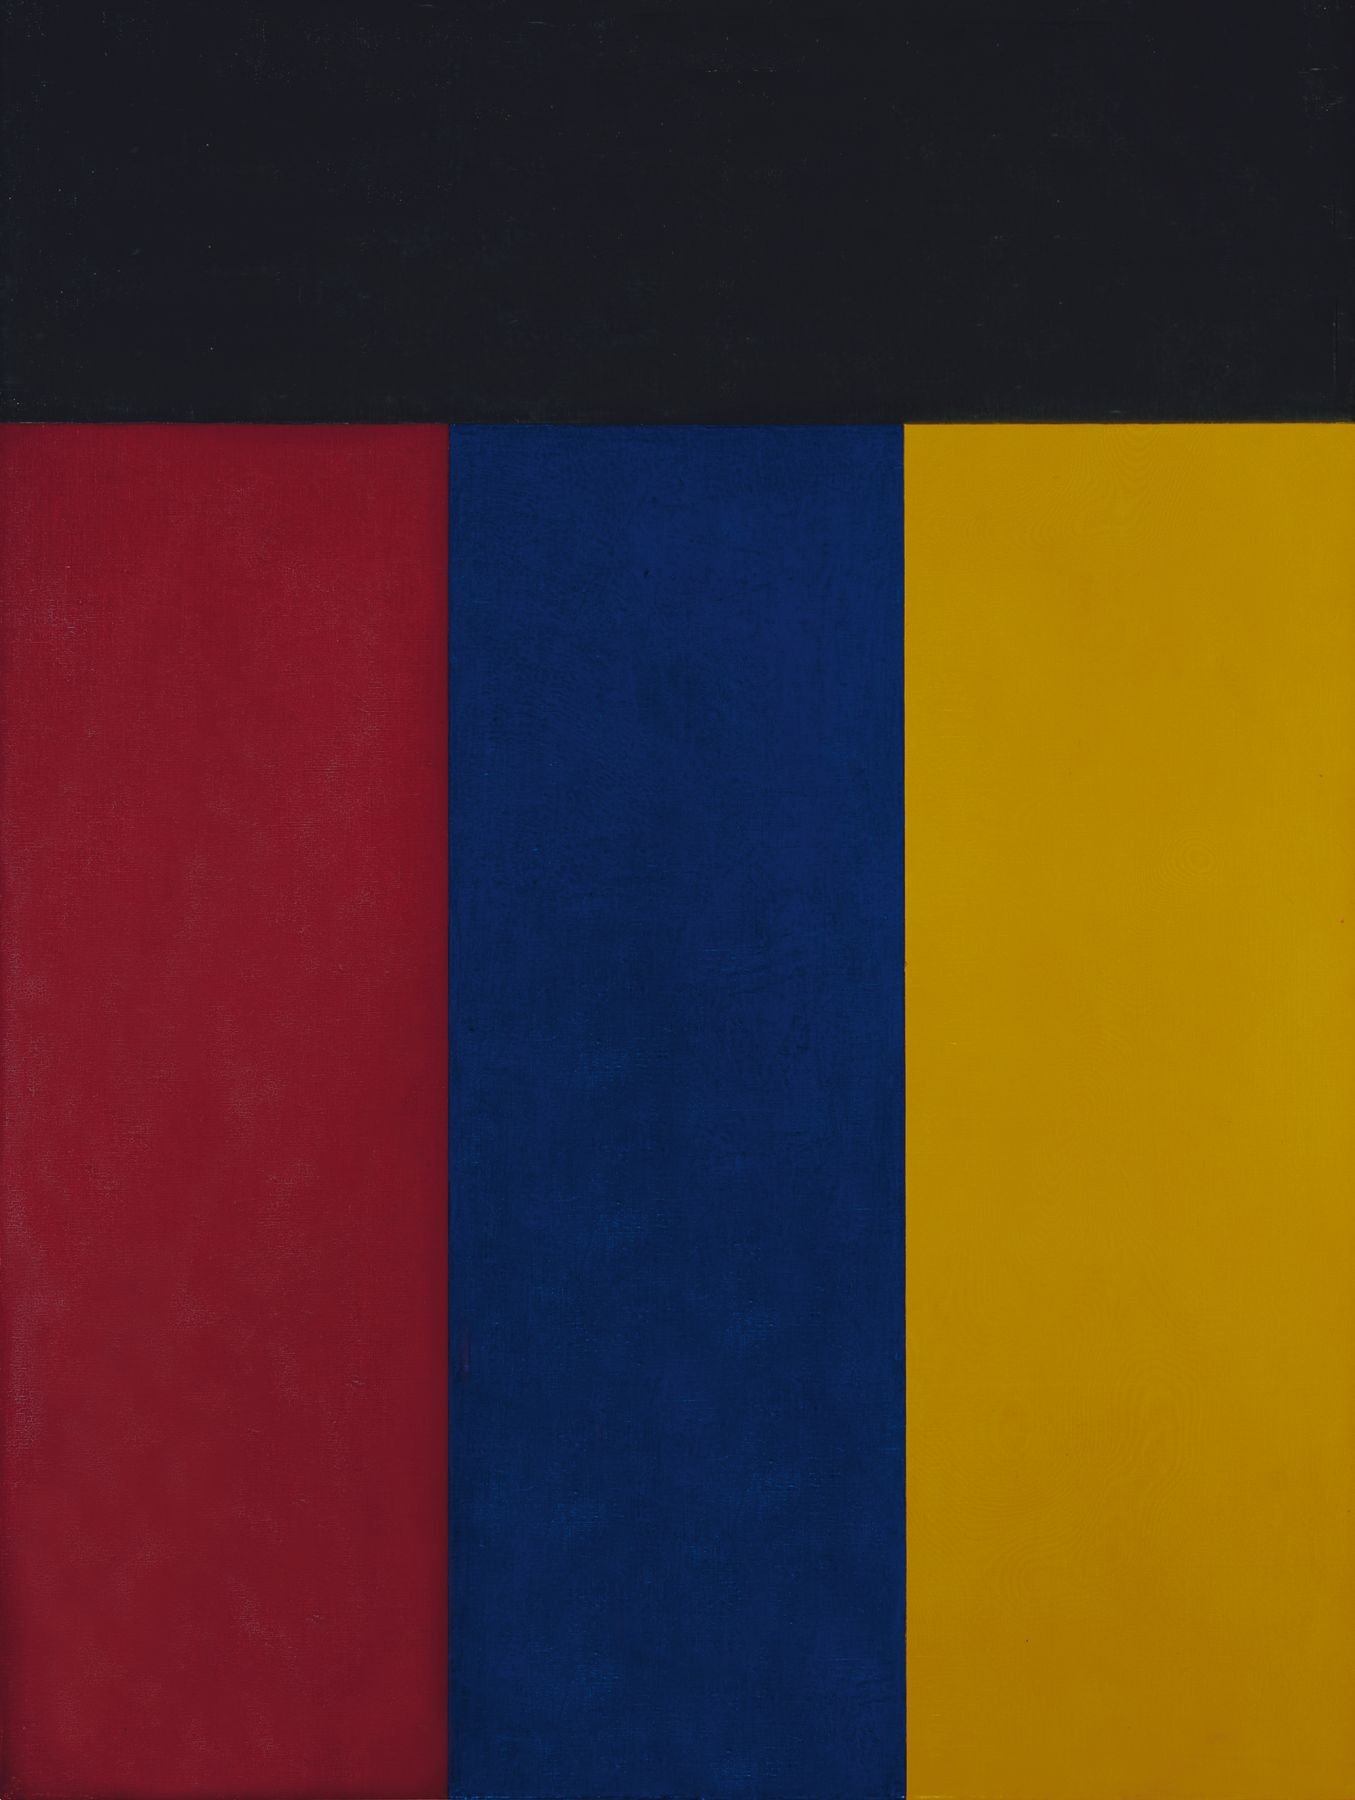 Brice Marden, Elements V, 1984, oil on canvas, 48 x 36 inches